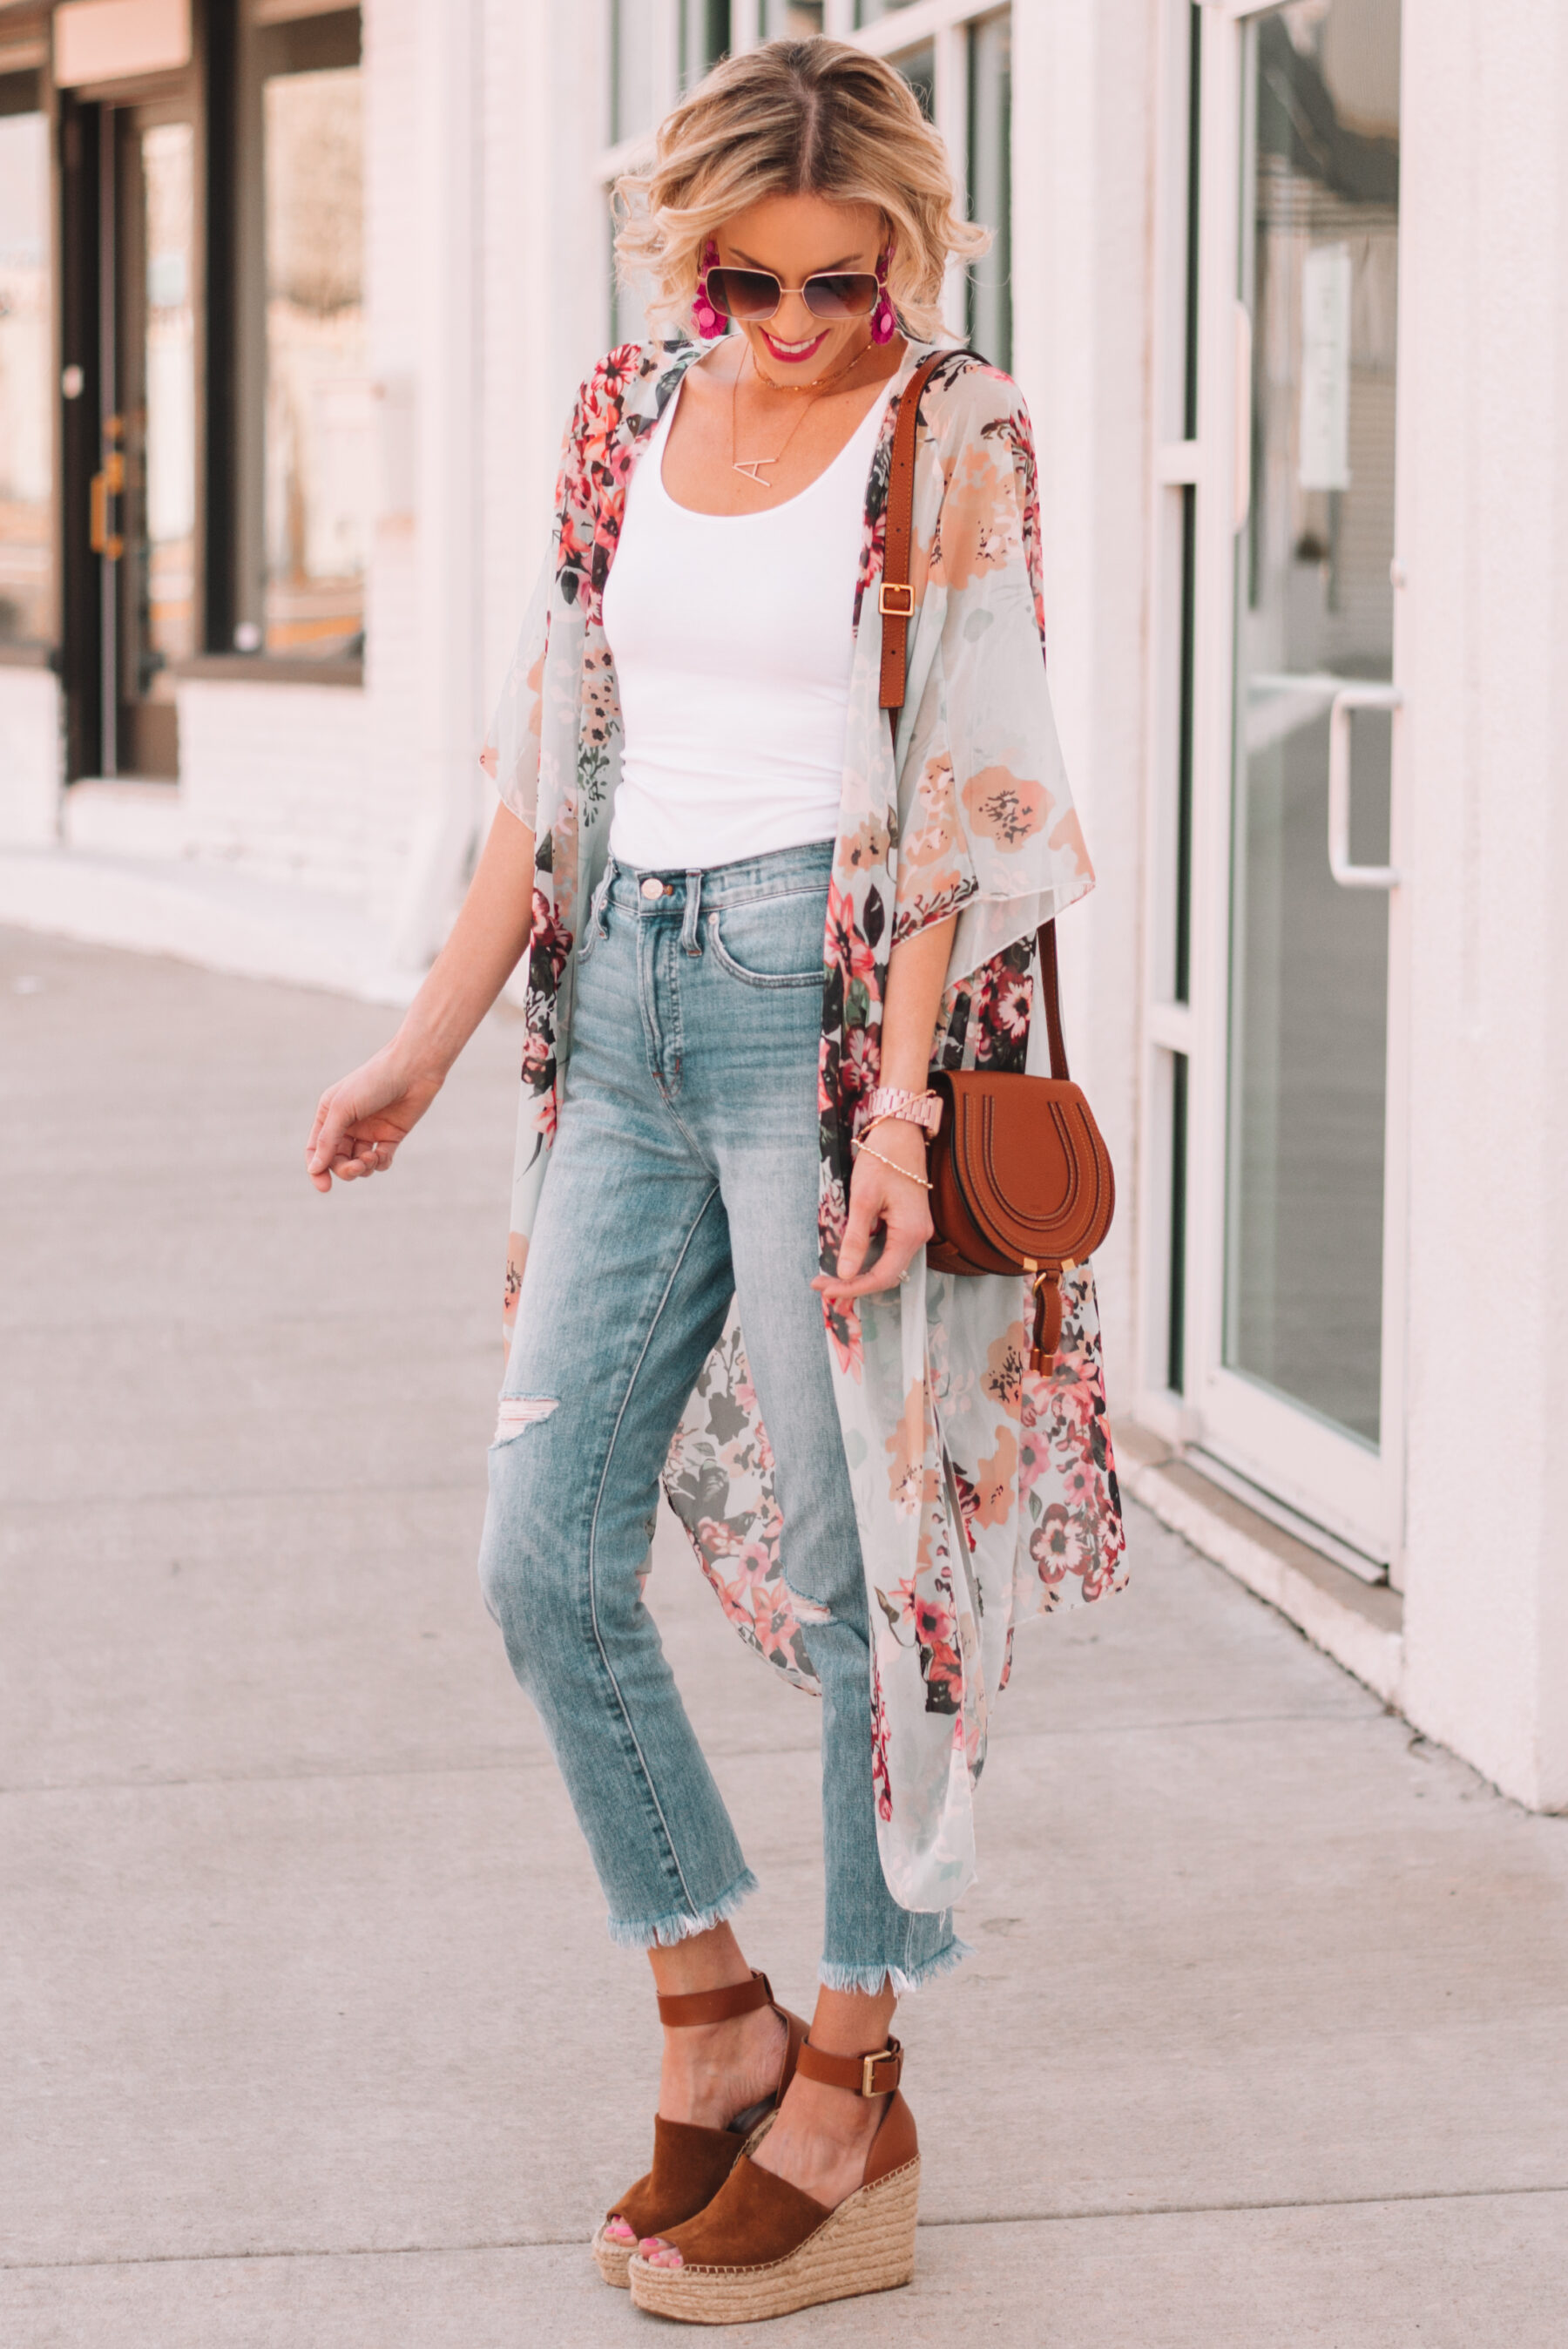 528c619a0f1d how to wear ankle strap sandals with cropped jeans, post all about what  shoes to ...